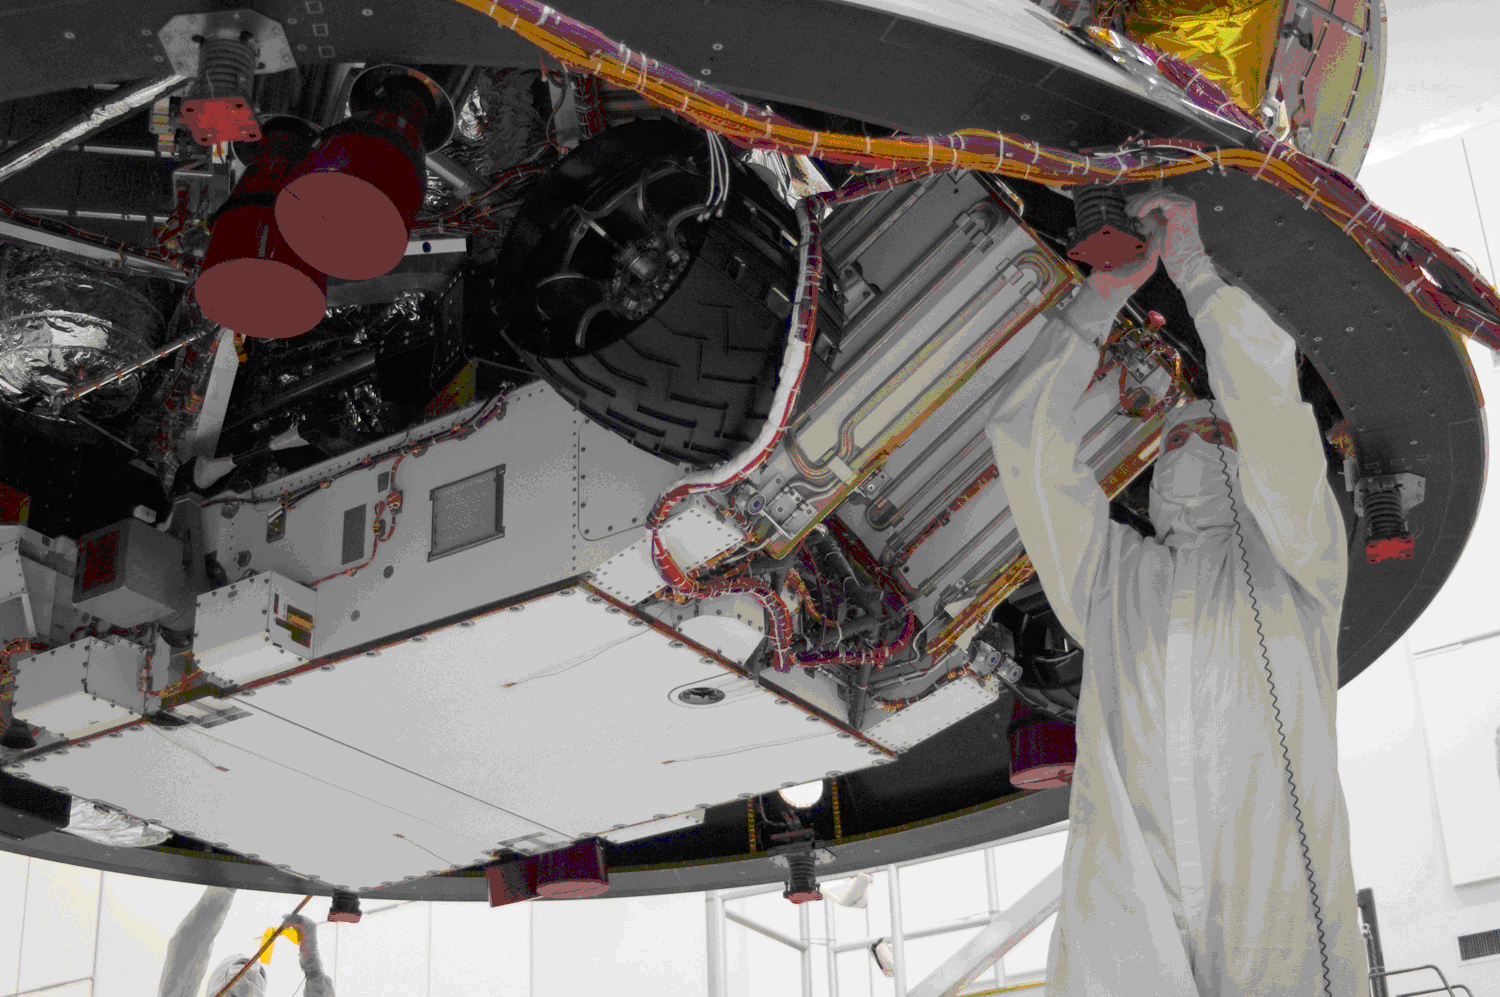 This image shows an engineer dressed in 'clean room' coveralls, working on the rover which is over head.